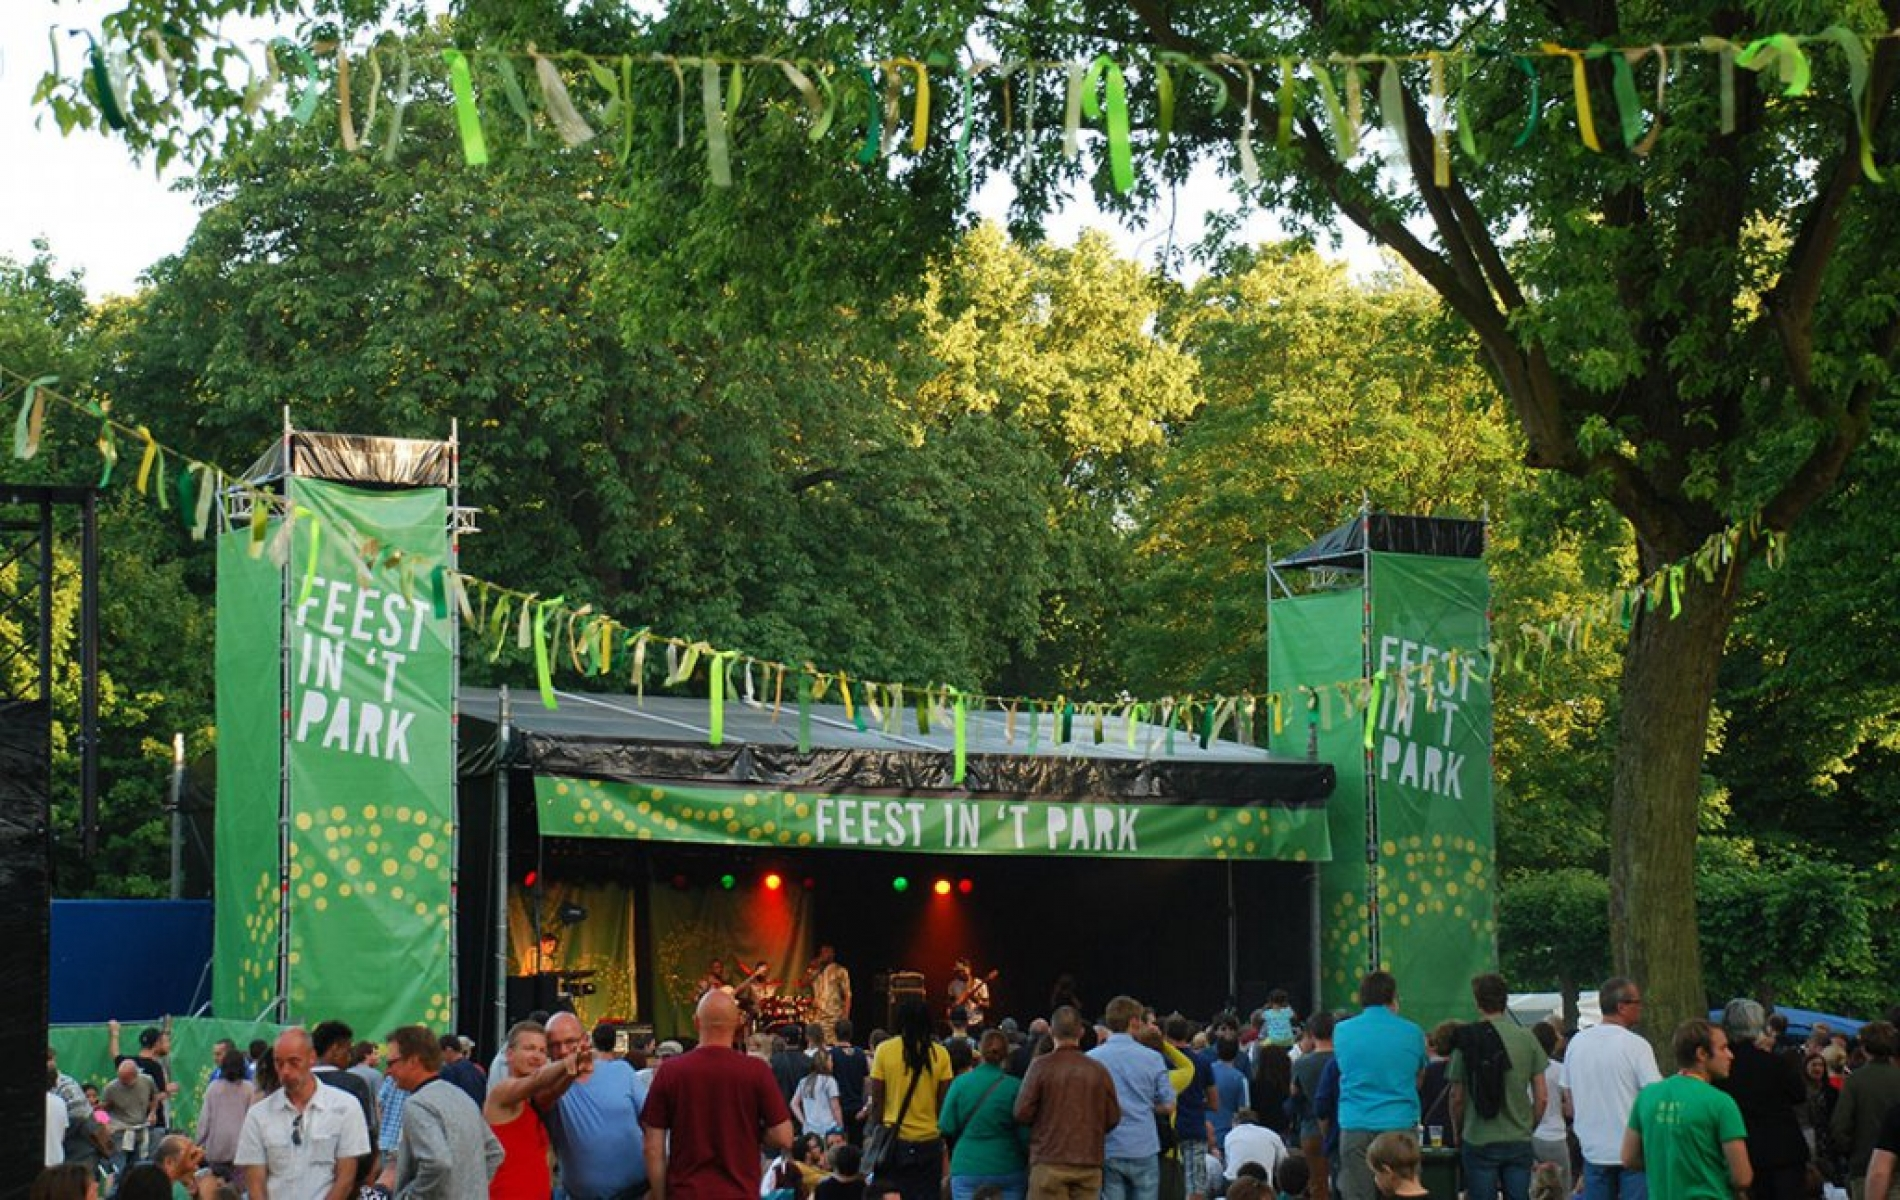 Feest in 't Park